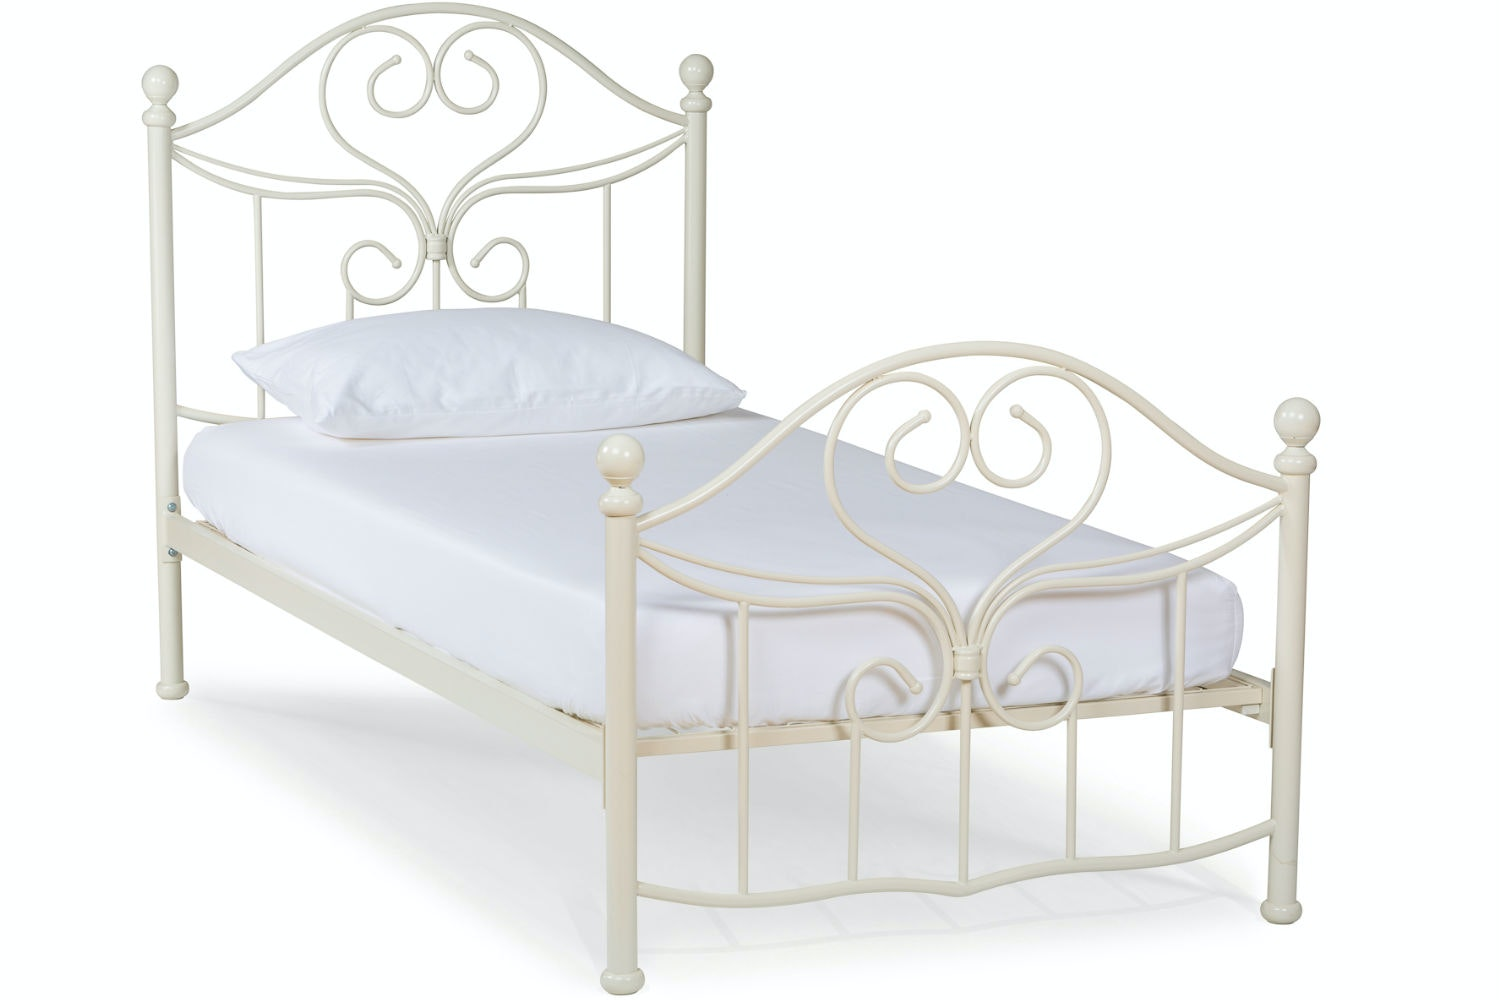 Julliet Single Metal Bed Frame | 3ft | Ivory